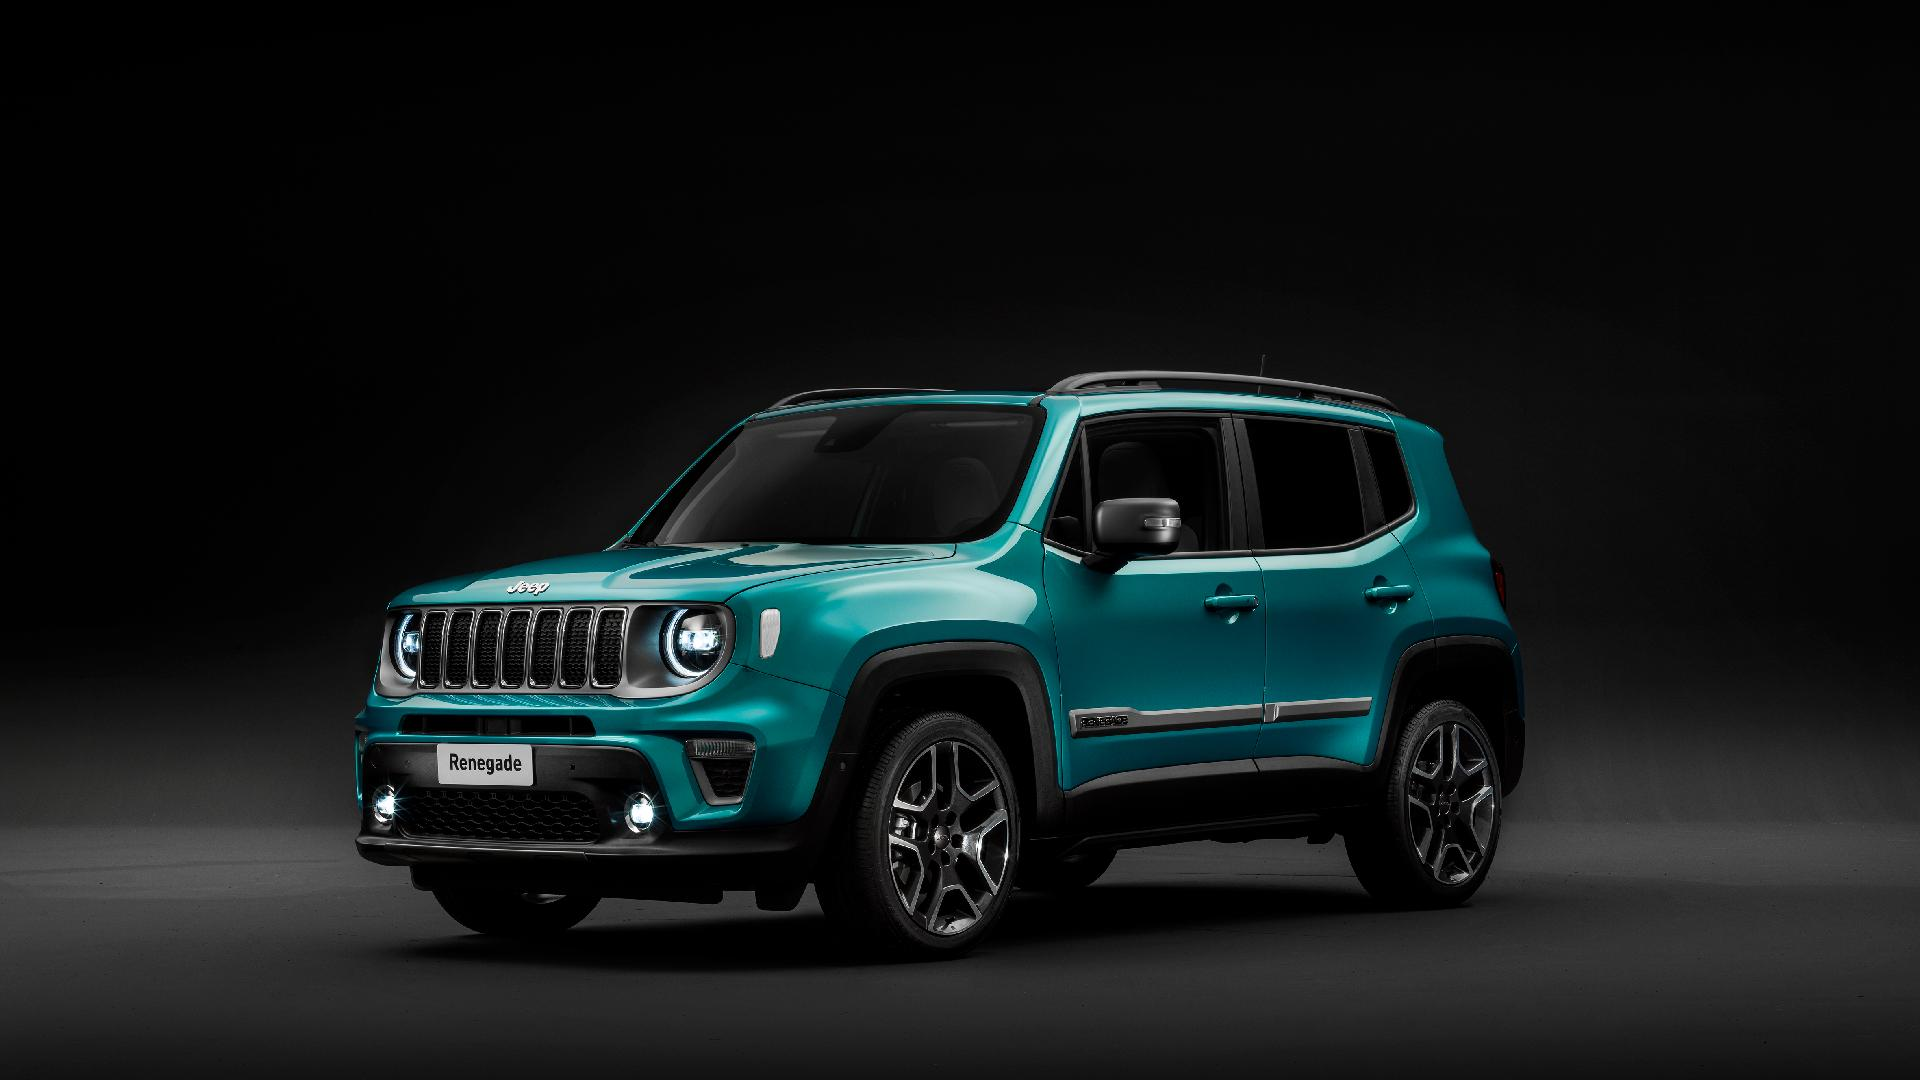 JEEP Renegade 1.3 GSE T4 Turbo Night Eagle II FWD S&S aut